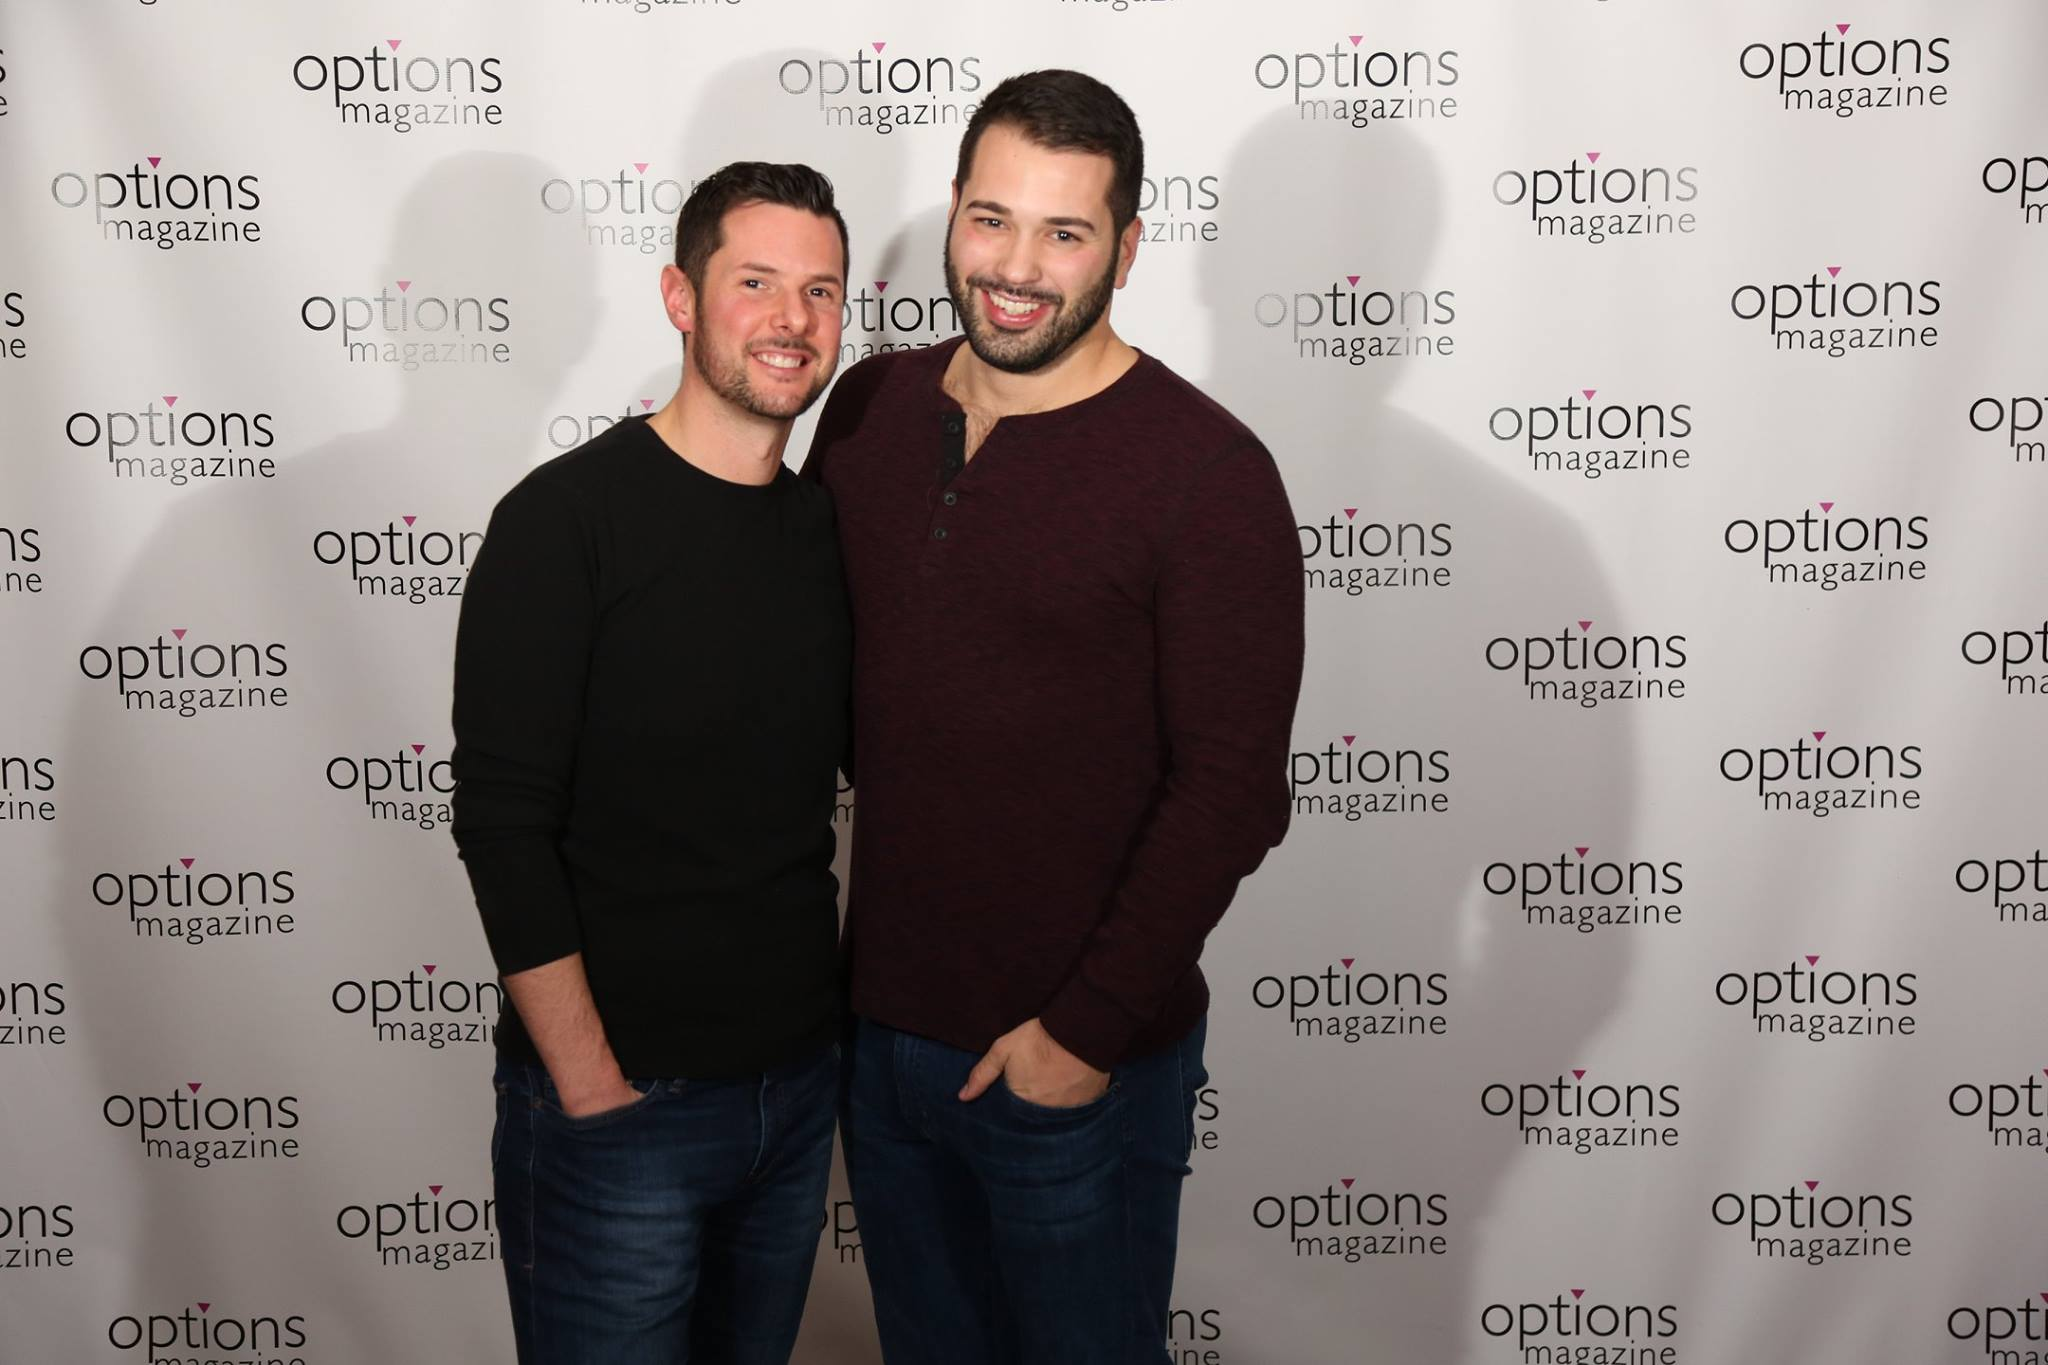 two men in front of Options logo